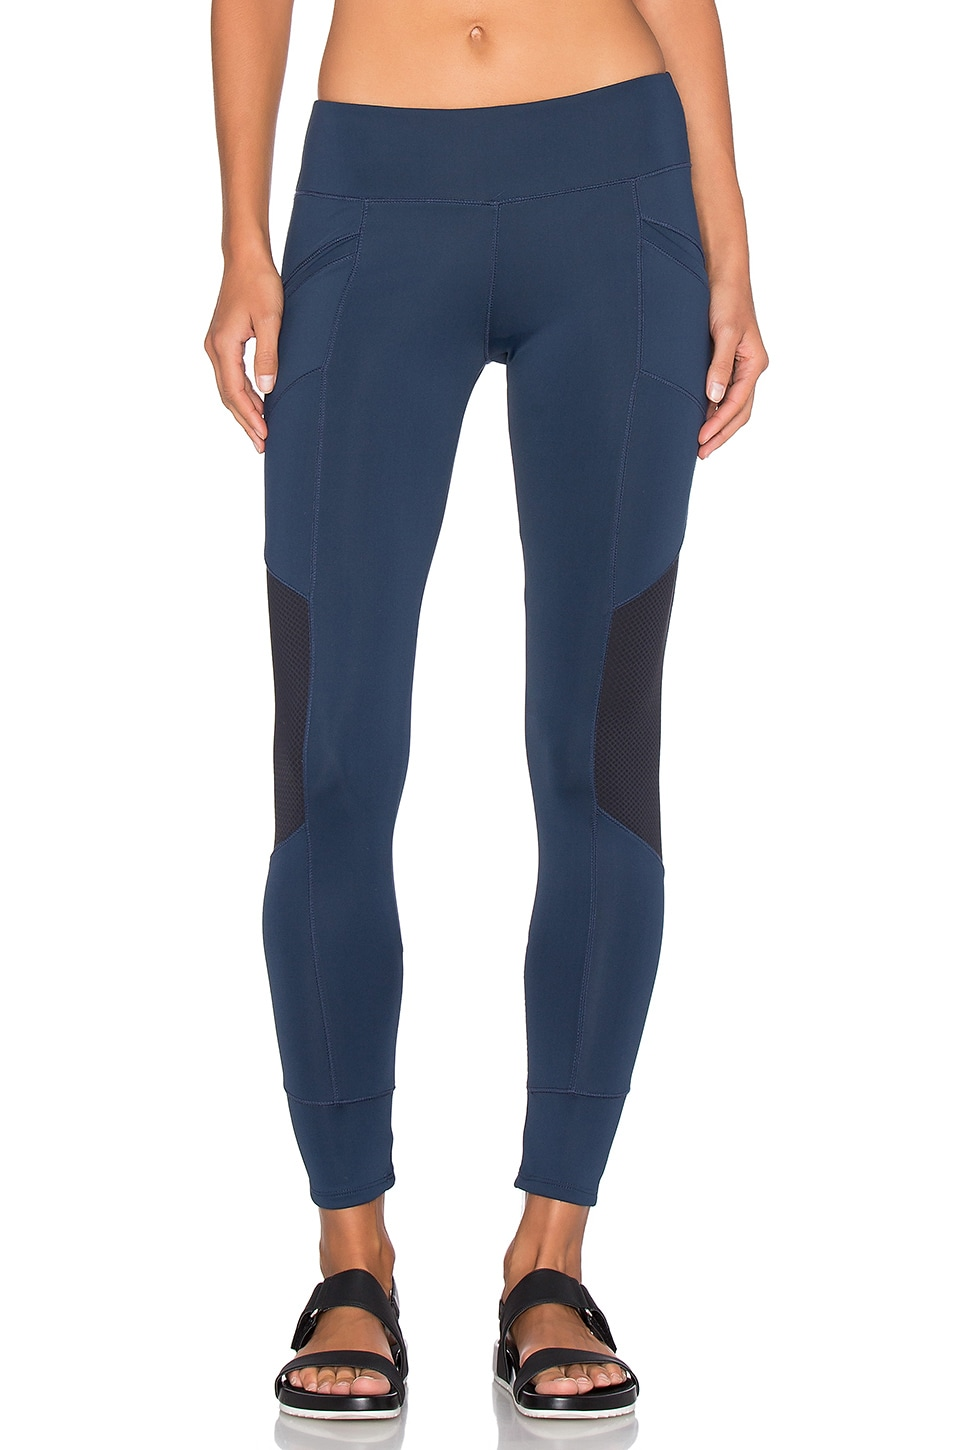 Xeno Legging by SOLOW